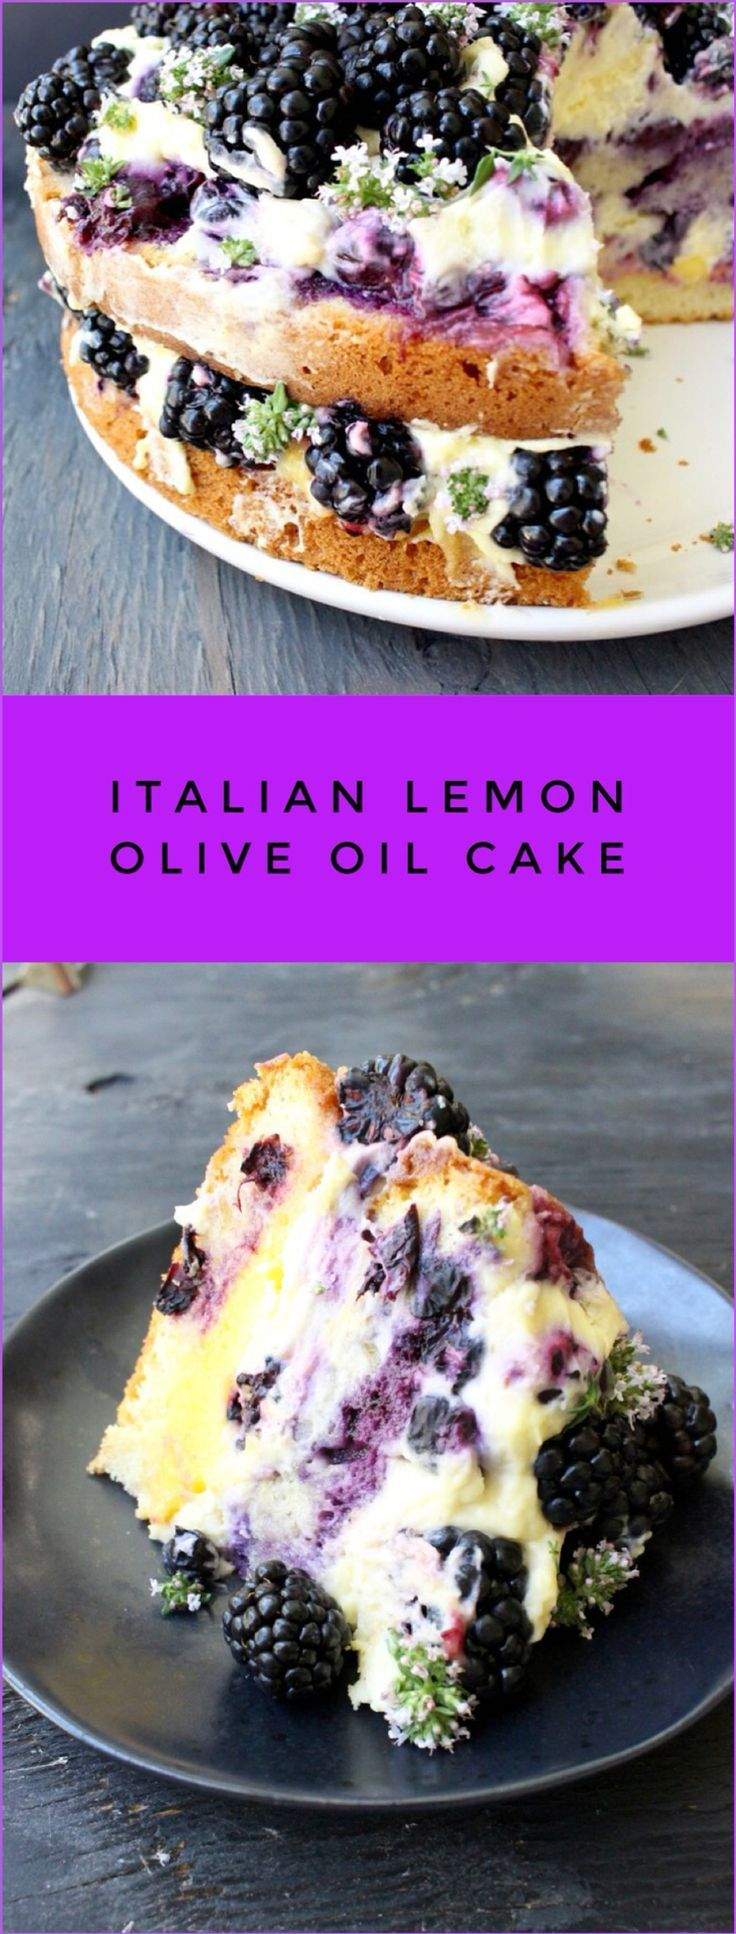 Best Italian Lemon Olive Oil Cake Recipe with Berries #oliveoils